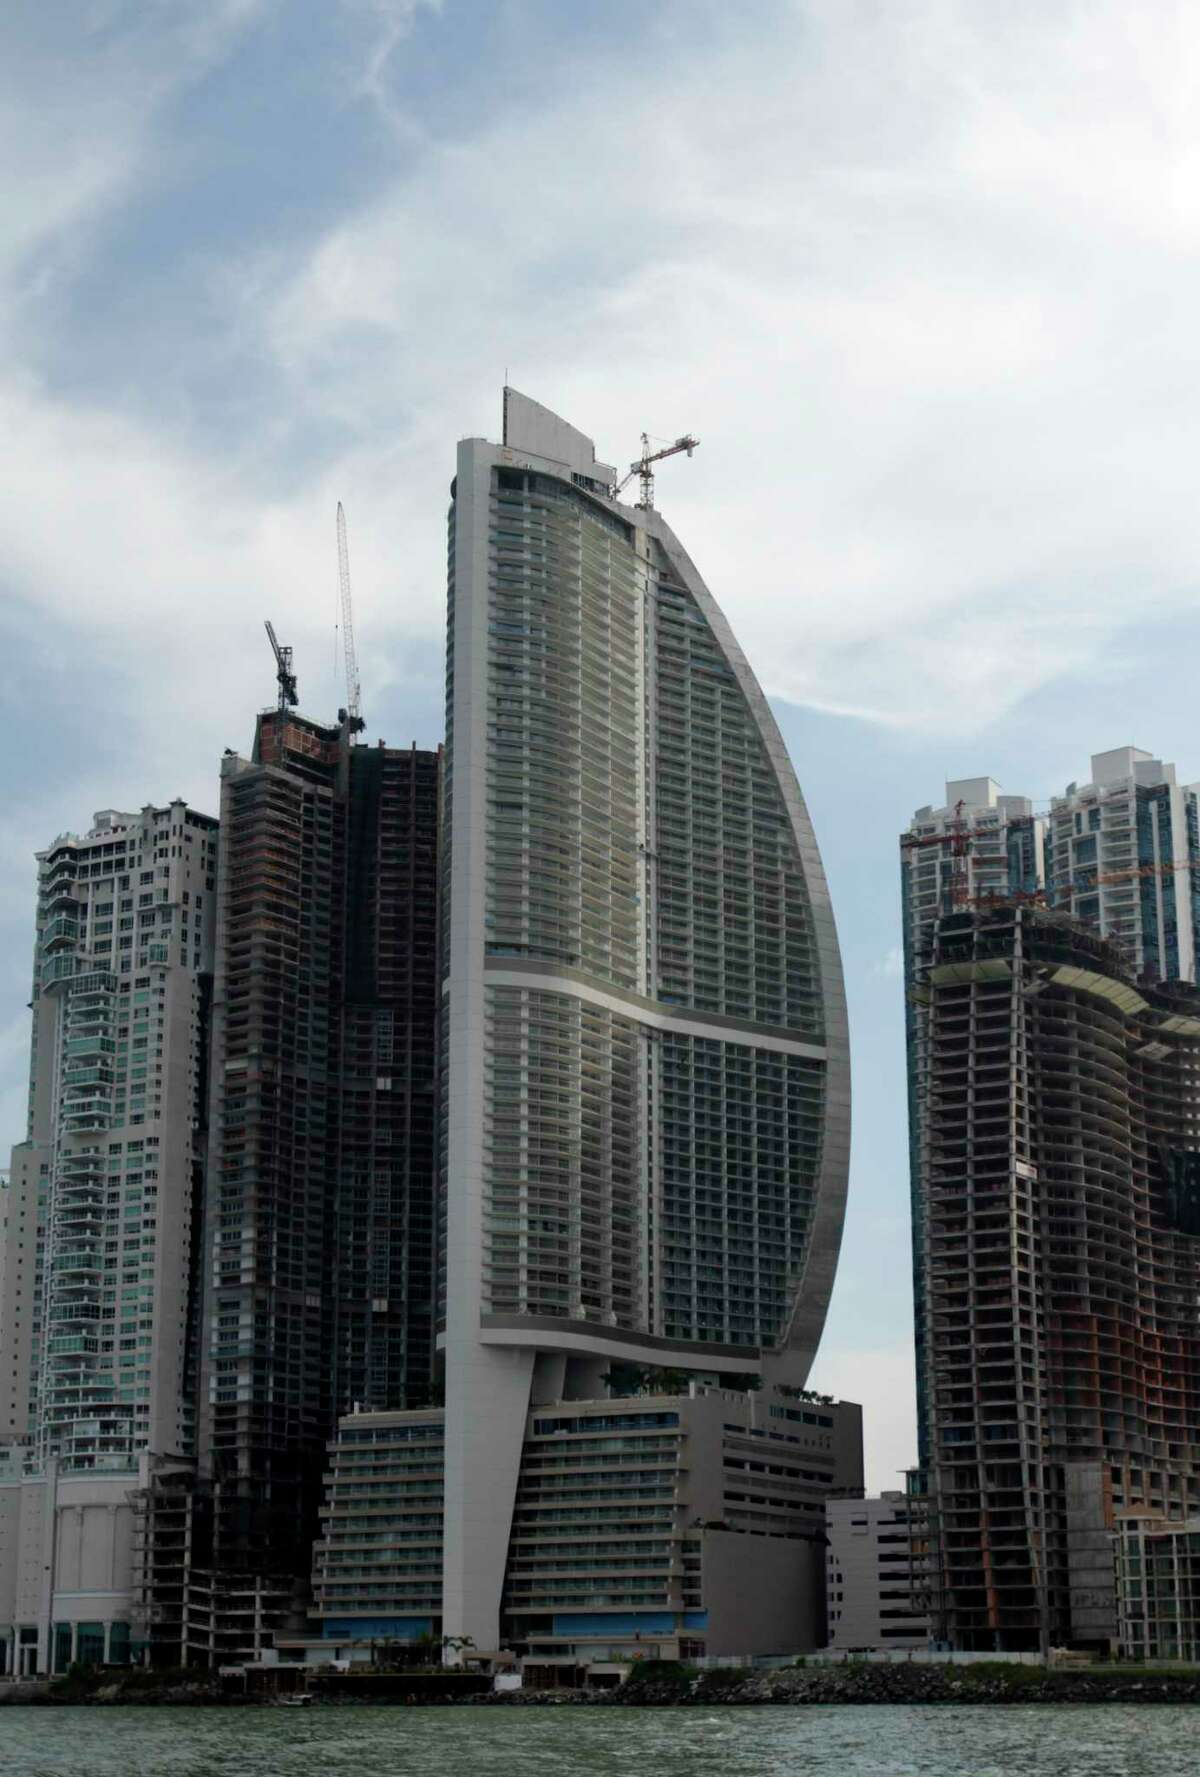 This July 4, 2011 photo shows the Trump Ocean Club International Hotel and Tower, third building from left, in Panama City, Panama.